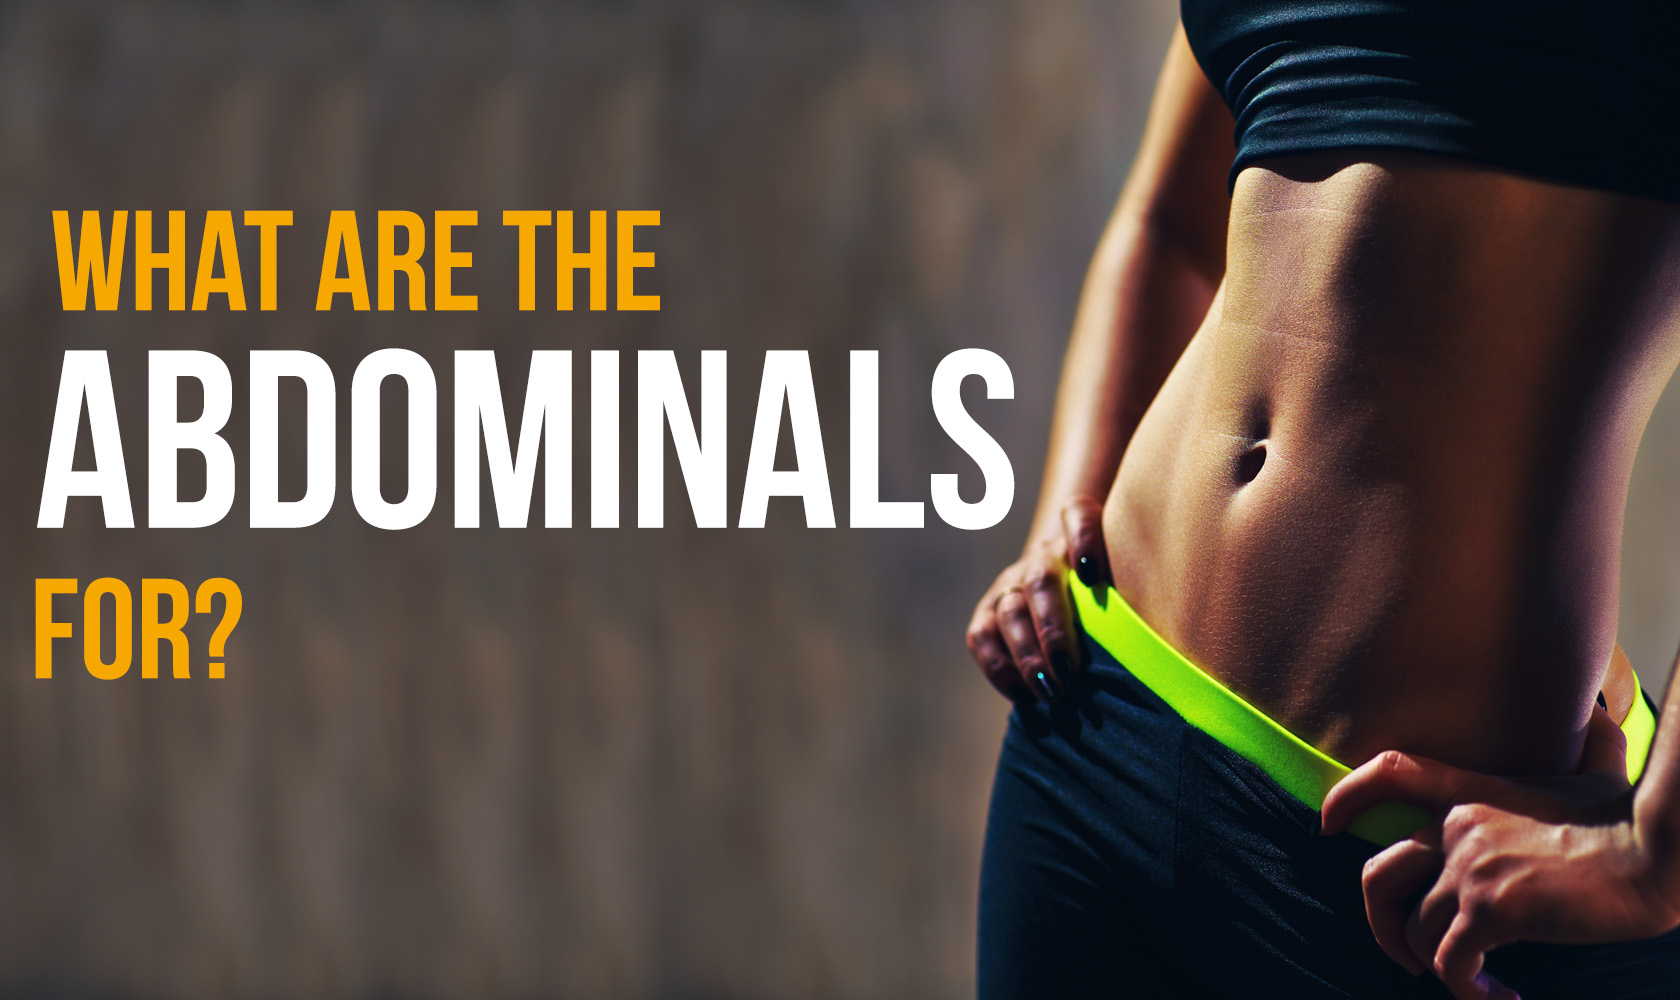 What Are the Abdominals For?